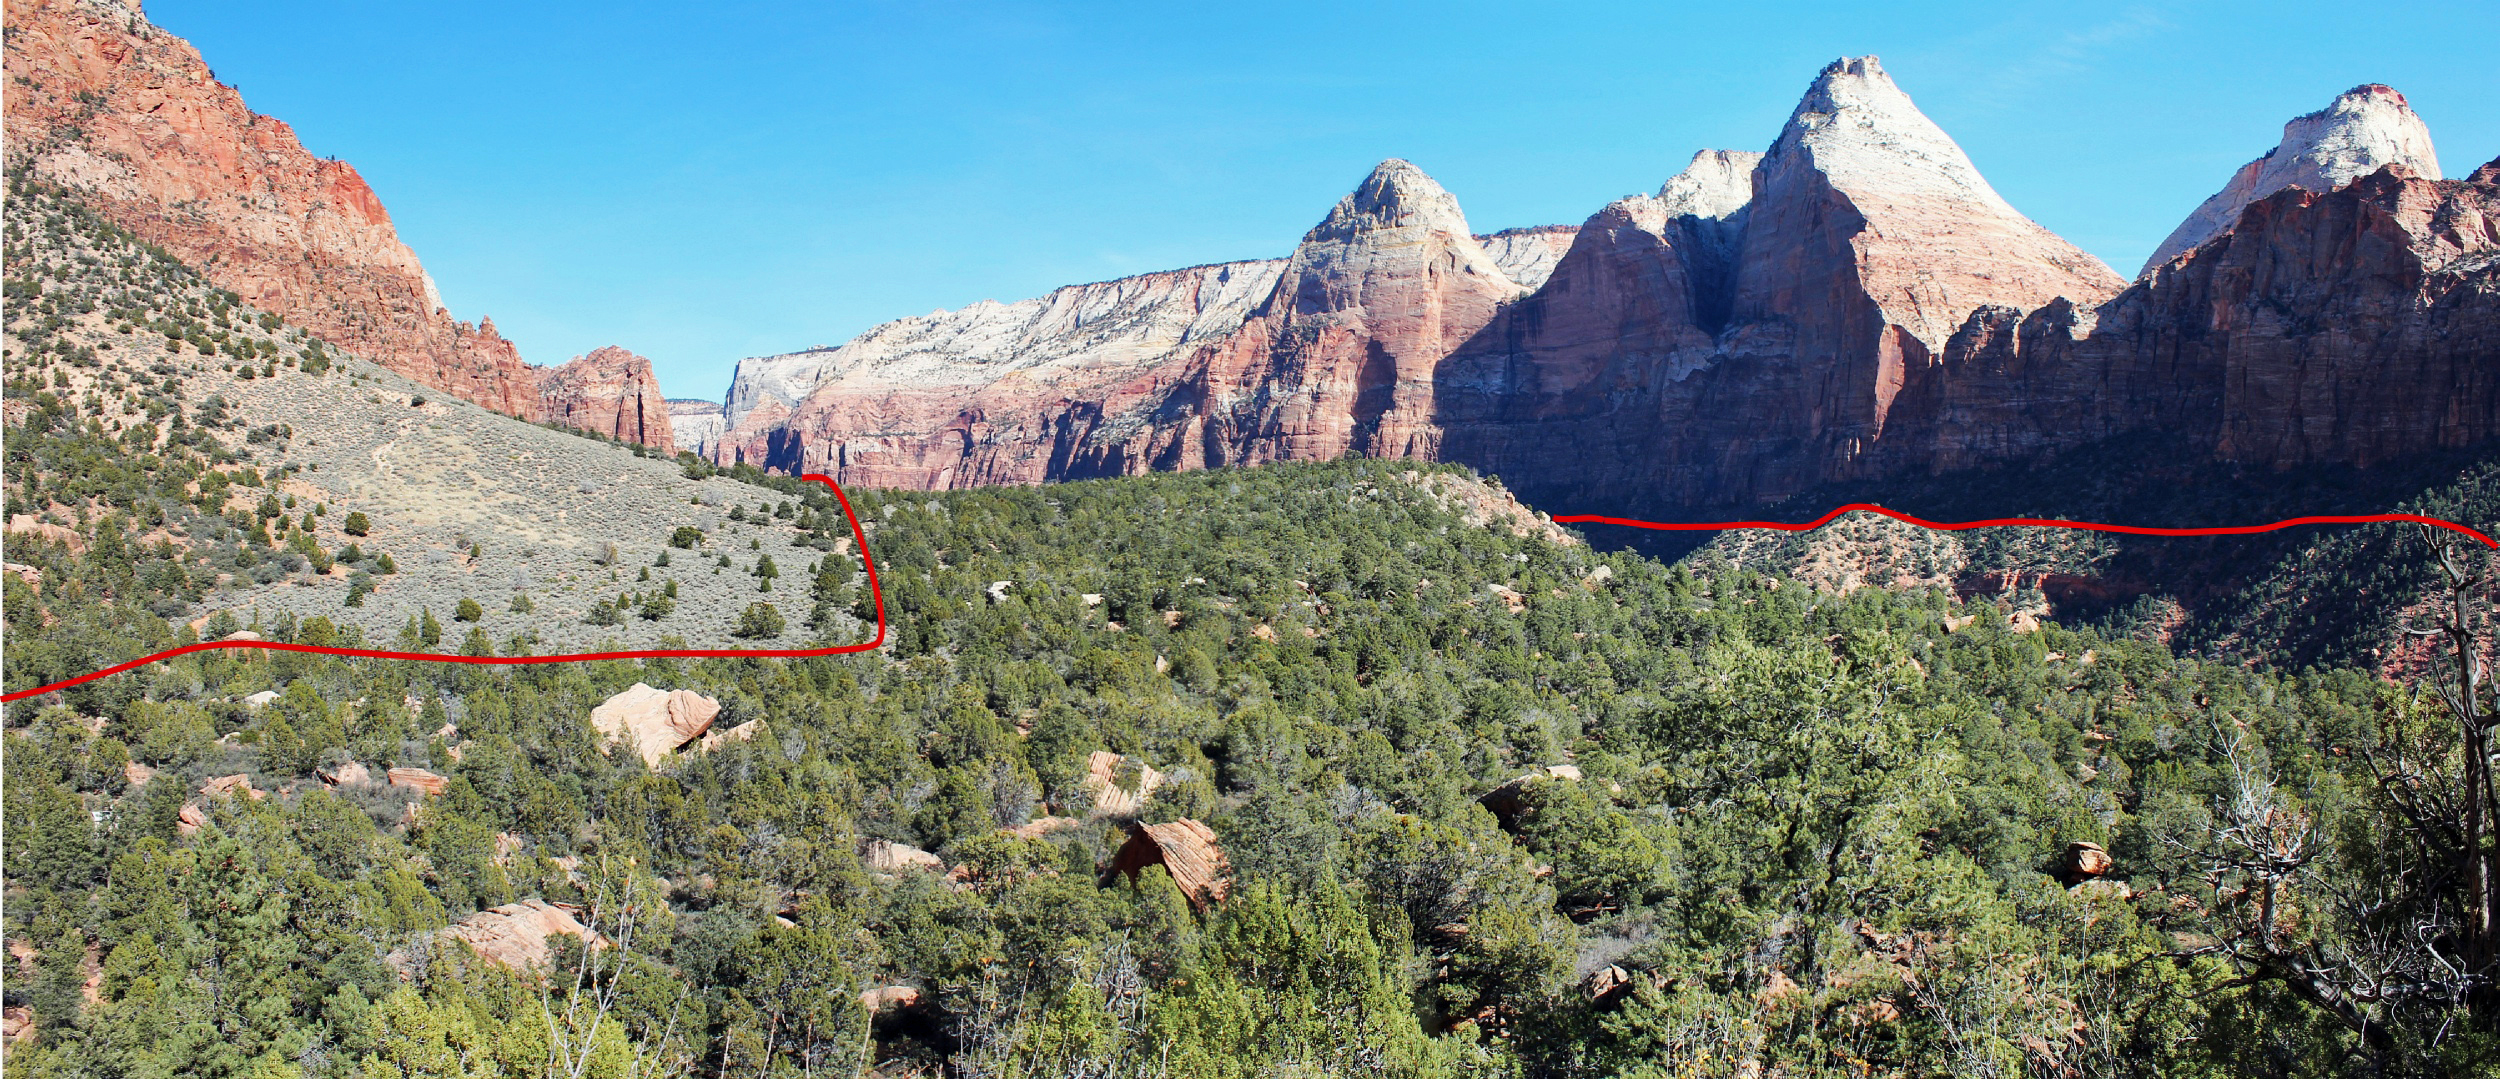 This view looking up Zion Canyon shows the remains of the giant Sentinel landslide, surrounded by the red line, that a new University of Utah study concludes happened 4,800 years ago, shaping the flat canyon floor of Zion Canyon Park in Utah.